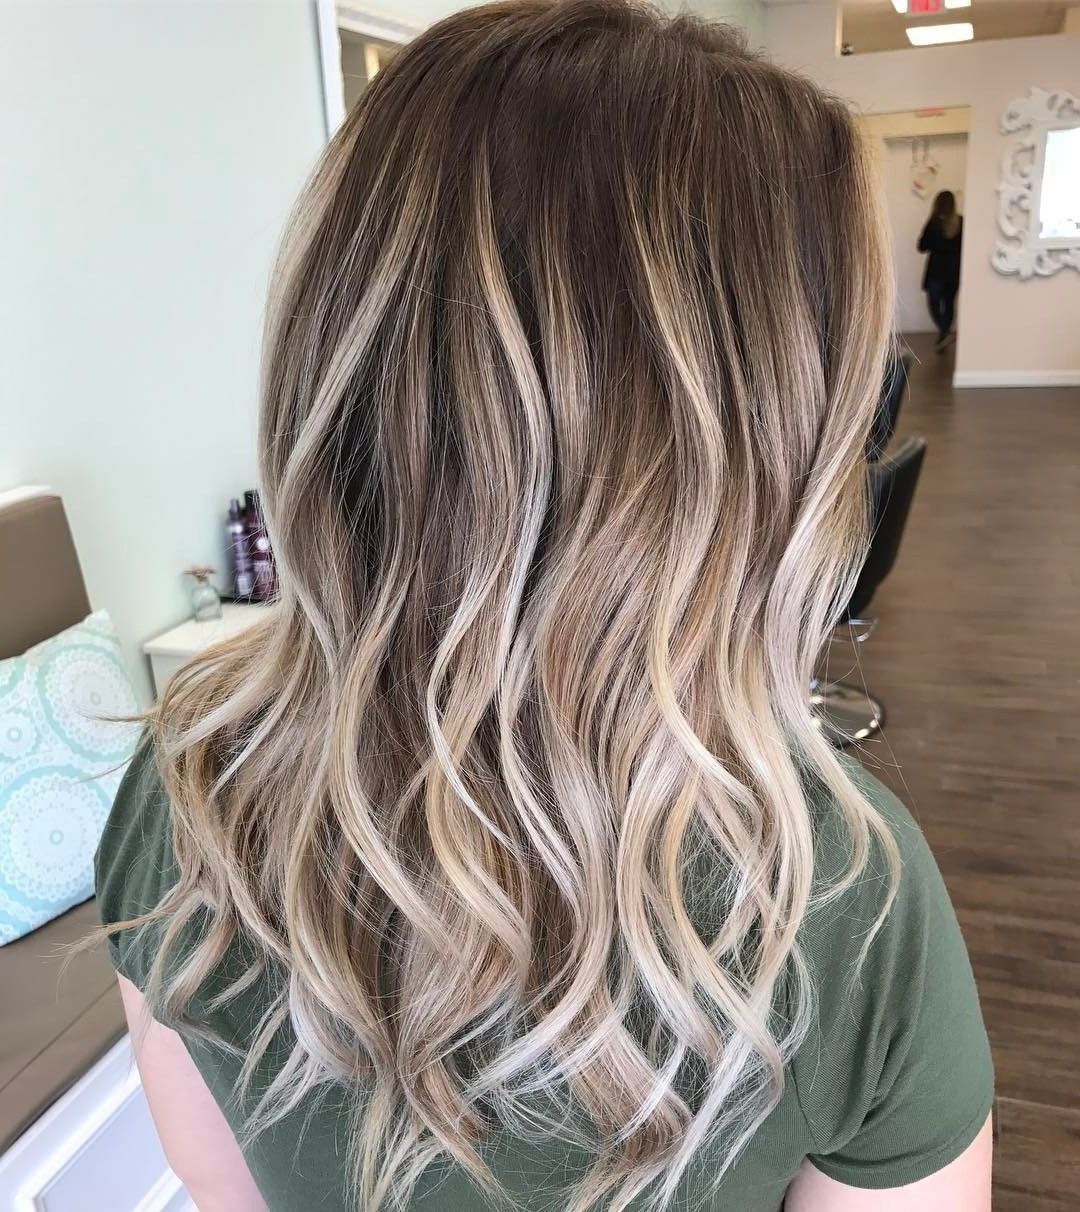 Sandy Blonde Hair Color As Of Neutral Hair Trends – Solbiatese Inside Well Known Straight Sandy Blonde Layers (View 17 of 20)